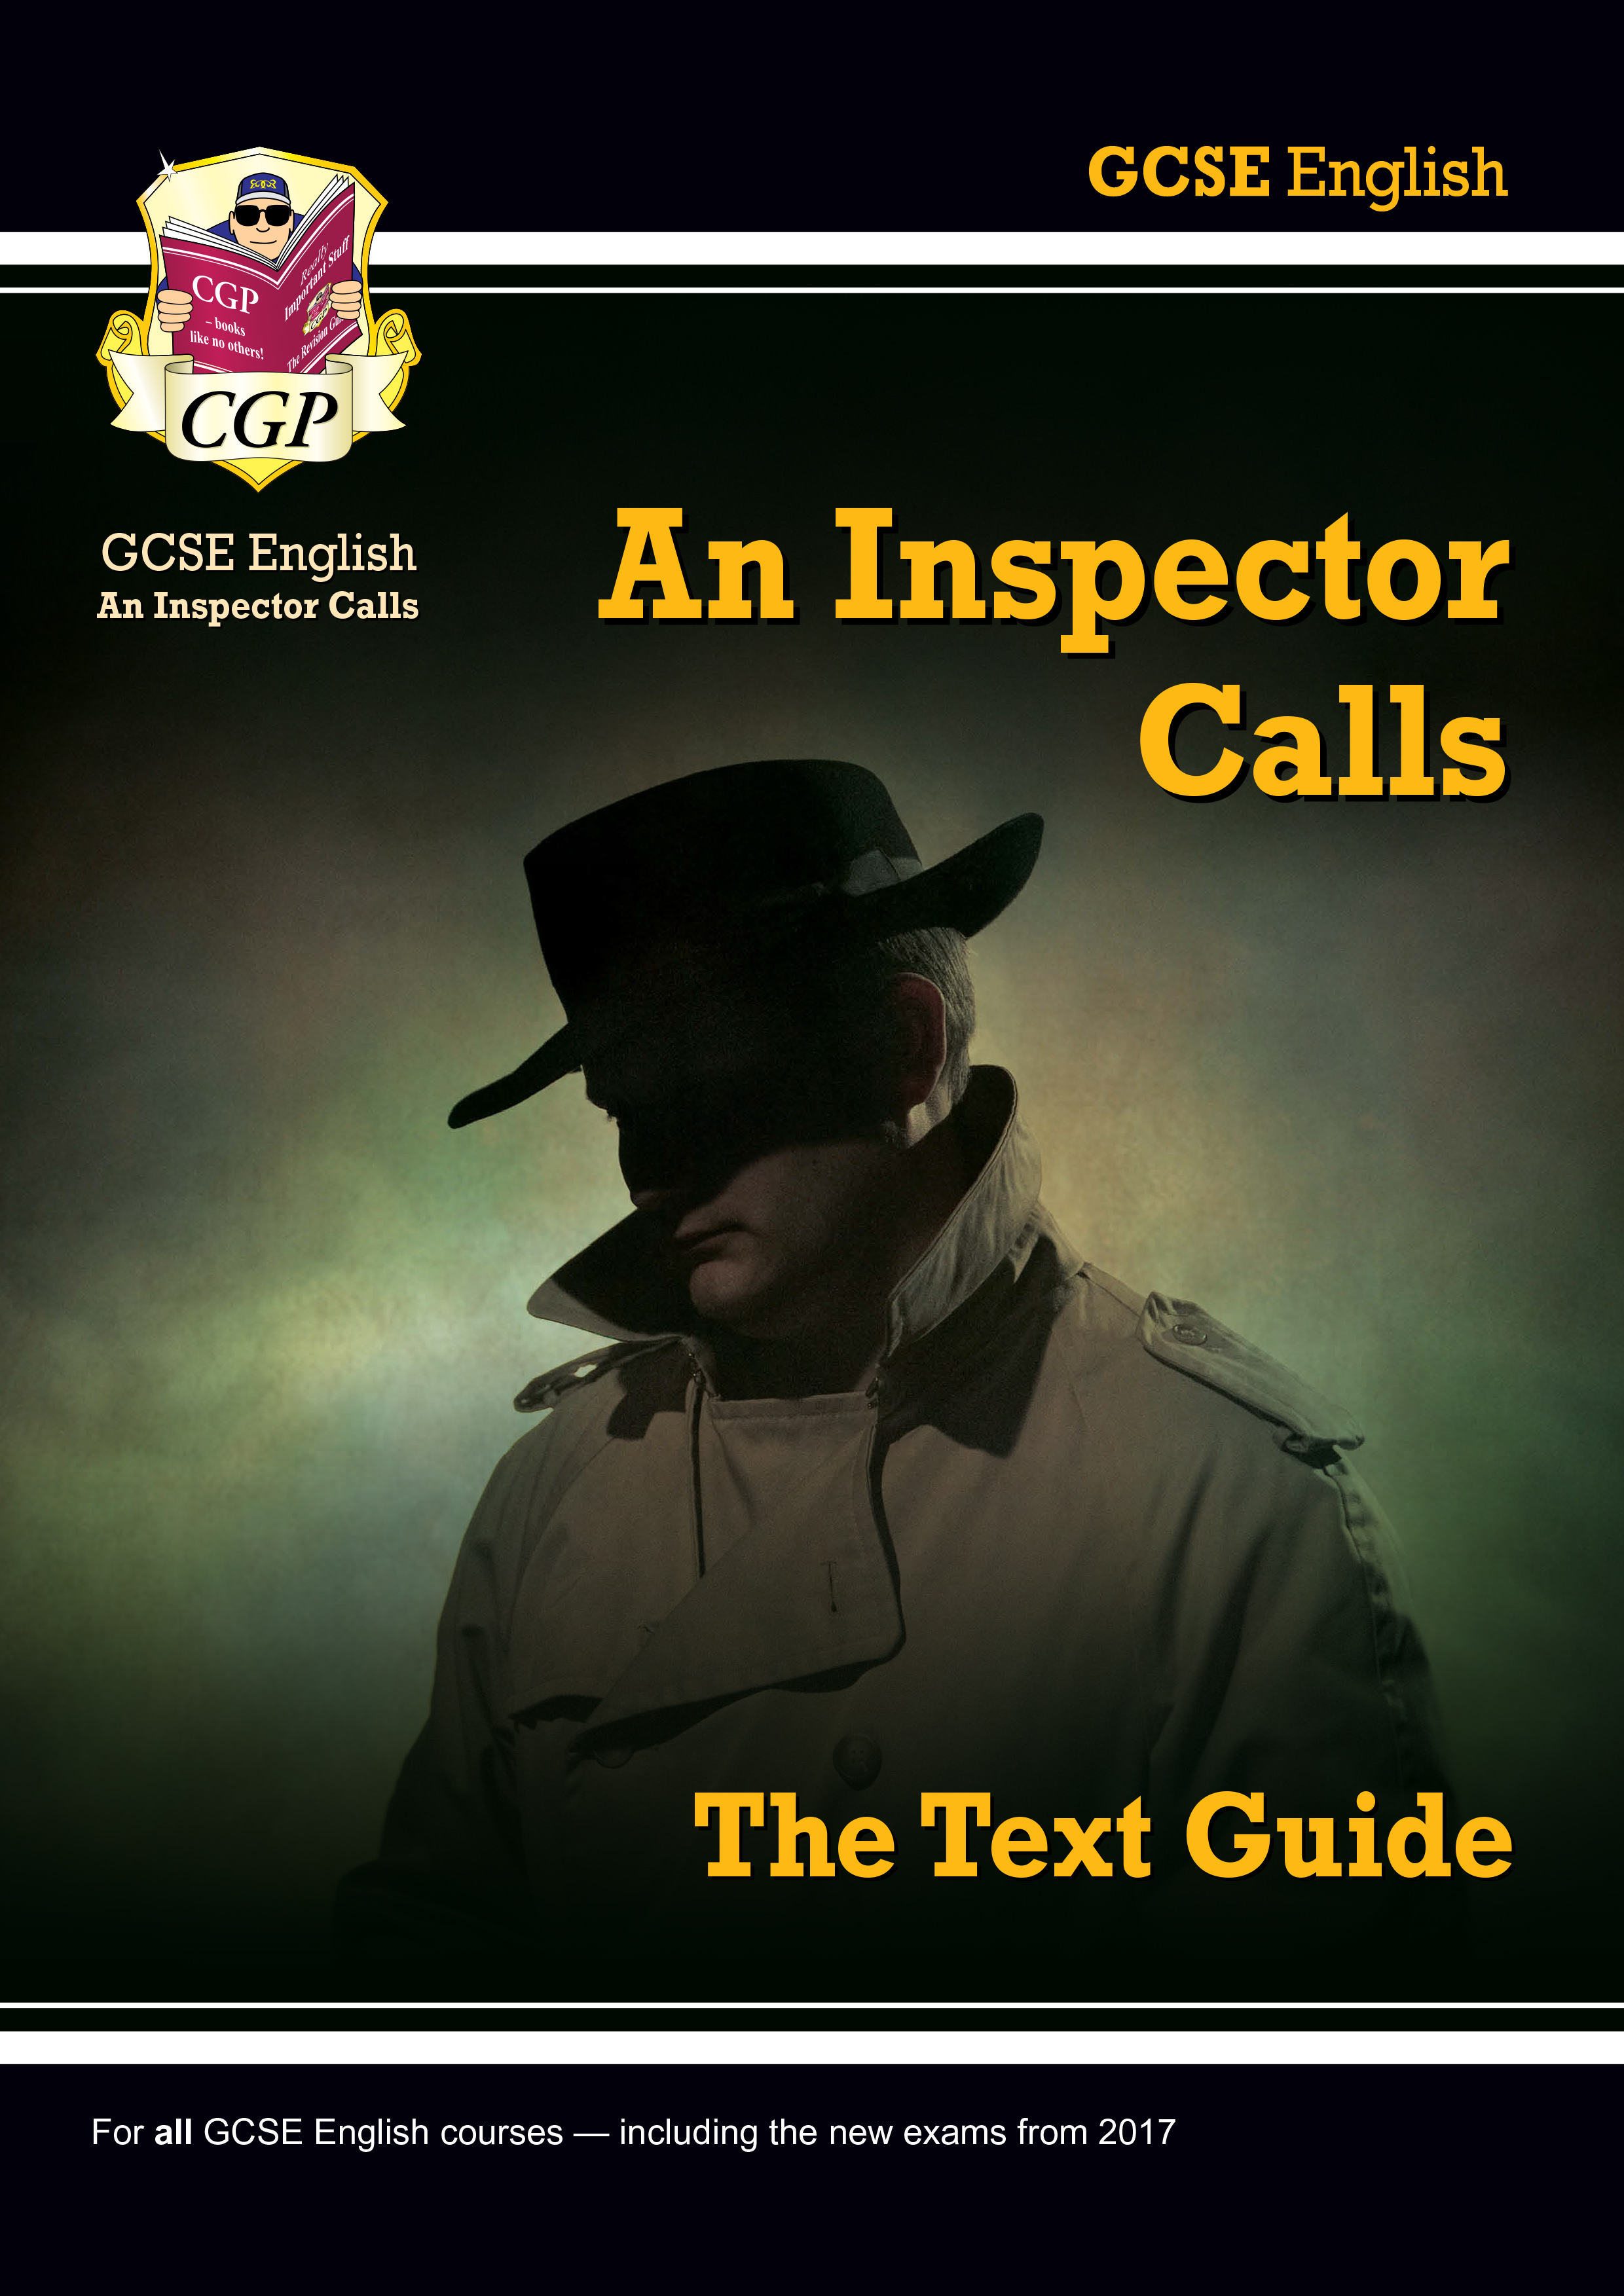 ETI44DK - Grade 9-1 GCSE English Text Guide - An Inspector Calls